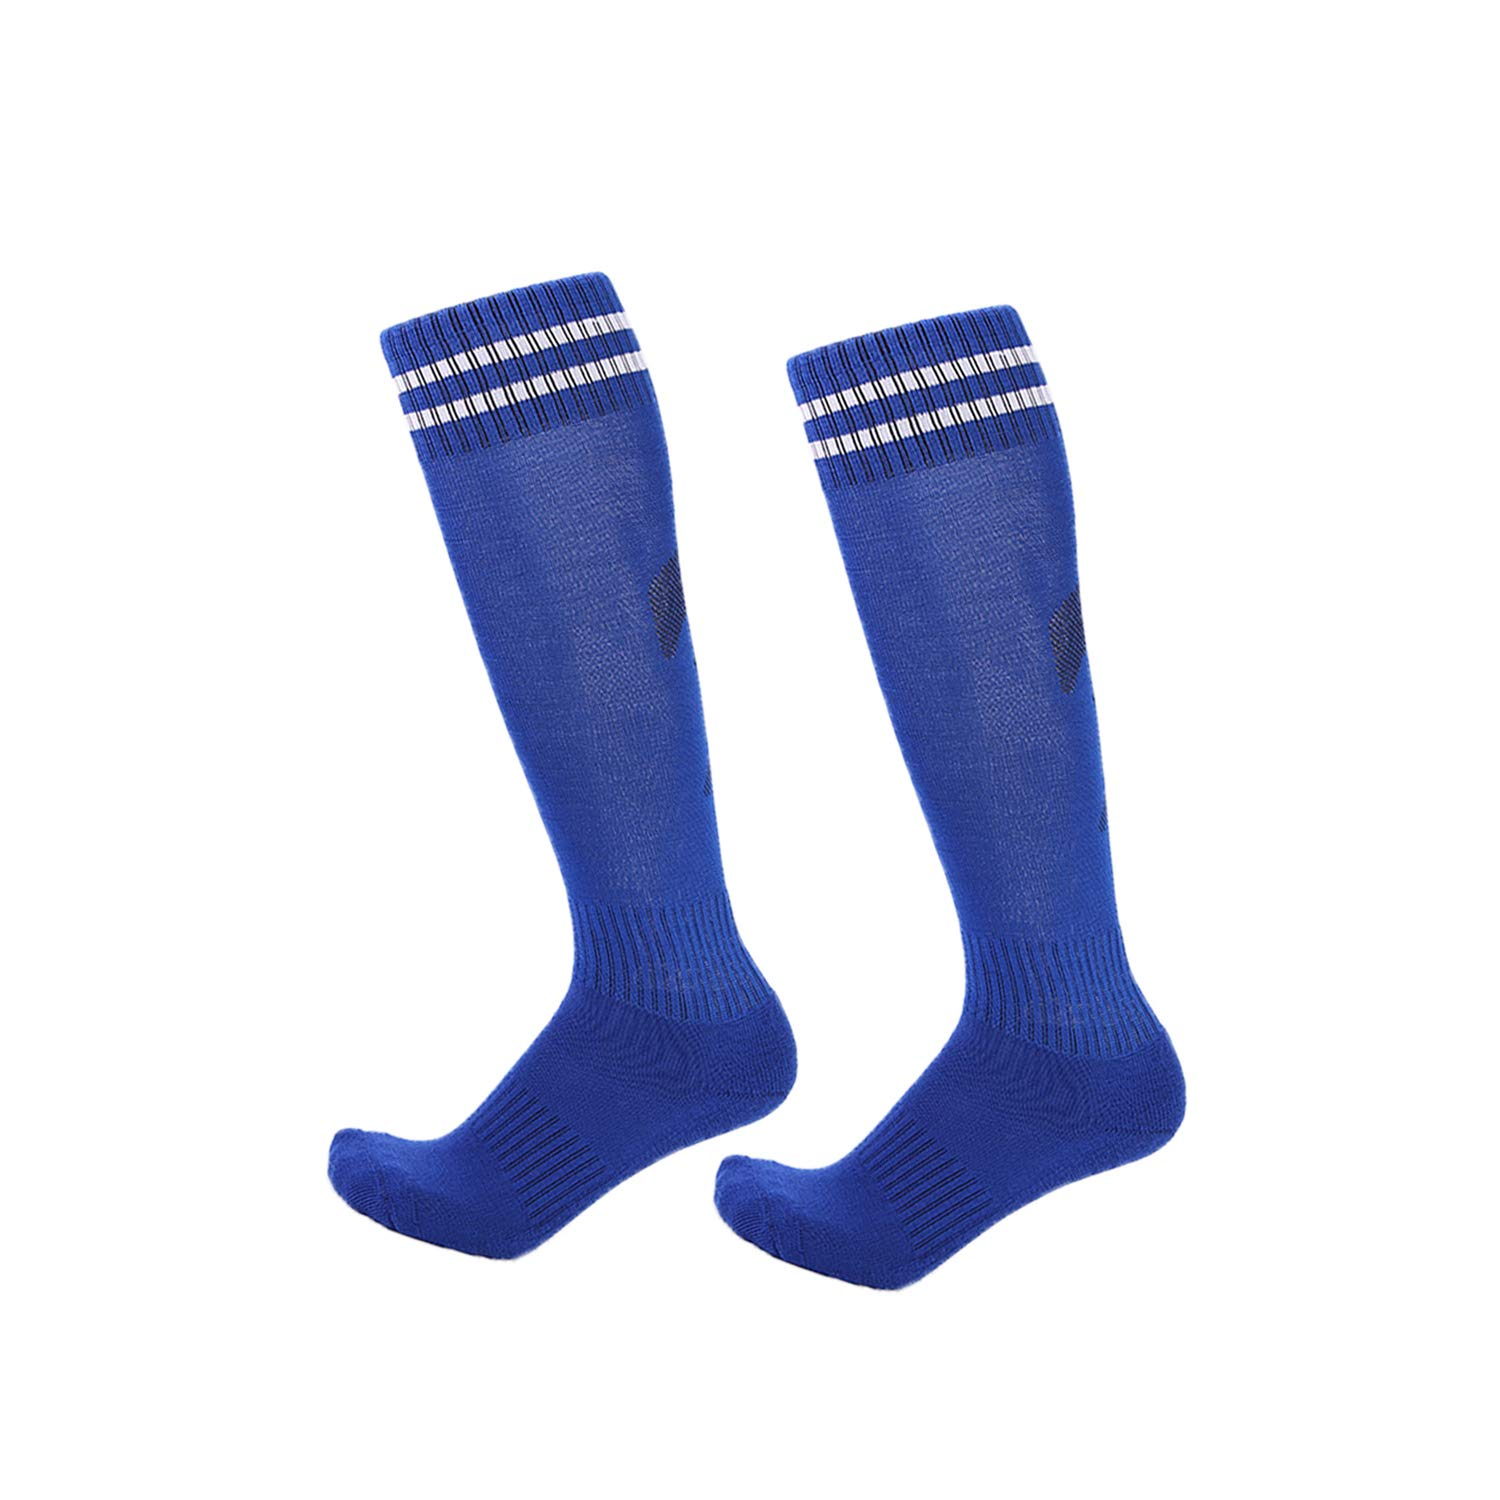 2 Pairs Boys Girls Soccer Socks Towel Cushioning Compression Sport Socks Cotton Team Socks for Children & Kids & Teenagers Sapphire by EBlife